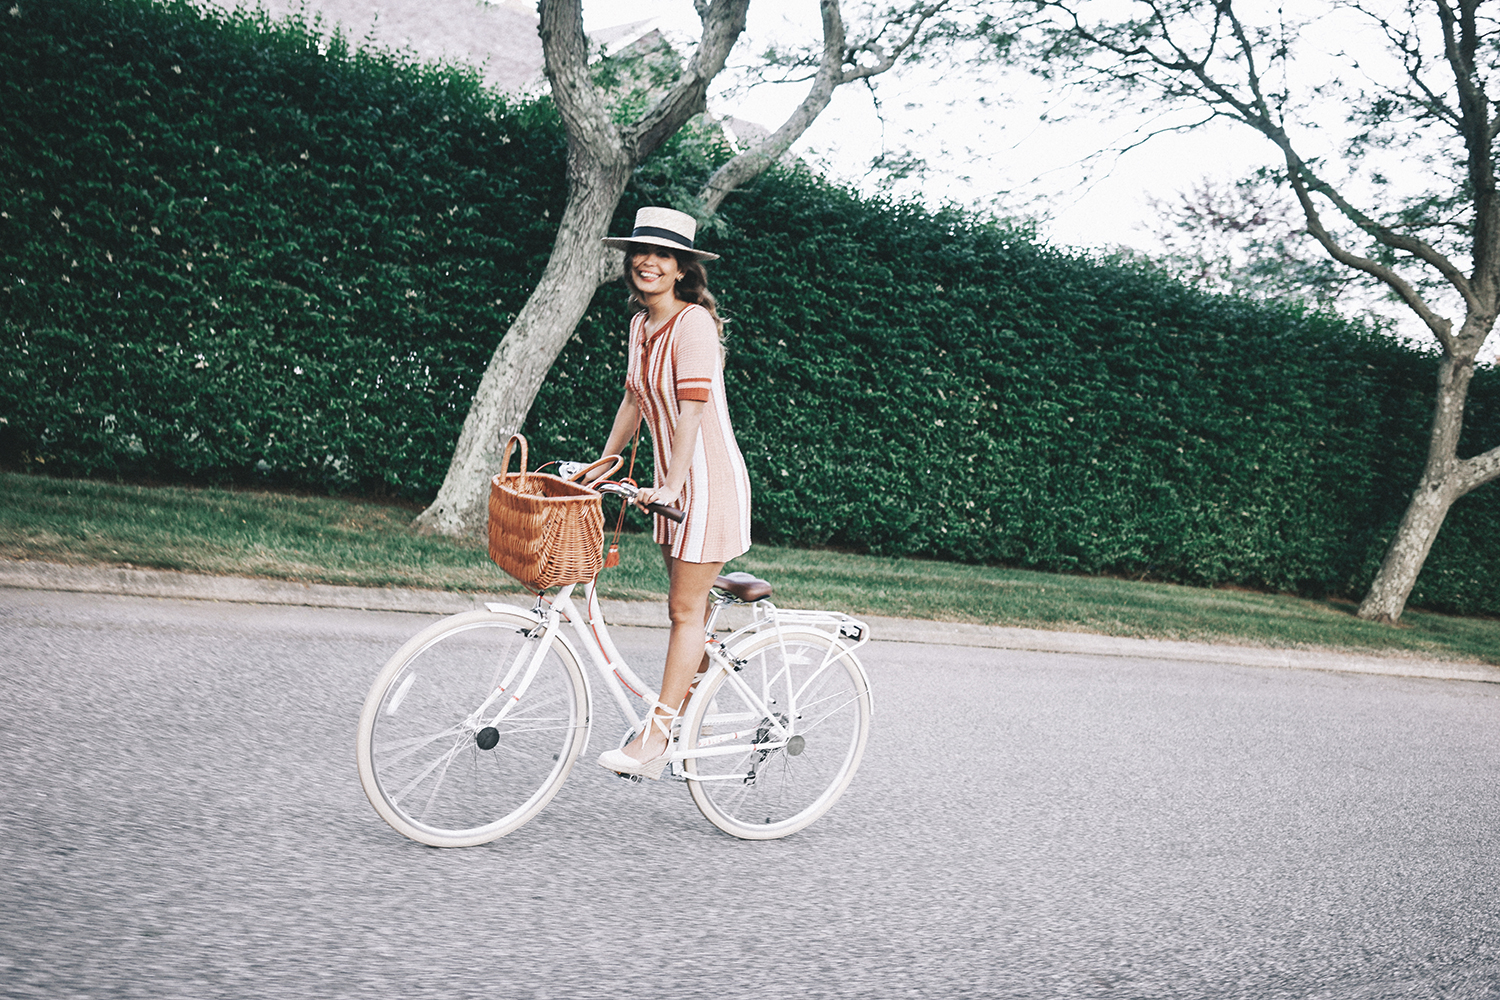 Revolve_in_The_Hamptons-Revolve_Clothing-Collage_Vintage-Free_People_Lace_Dress-Knitted_Dress-Soludos_Espadrilles-Canotier-Hat-Outfit-119